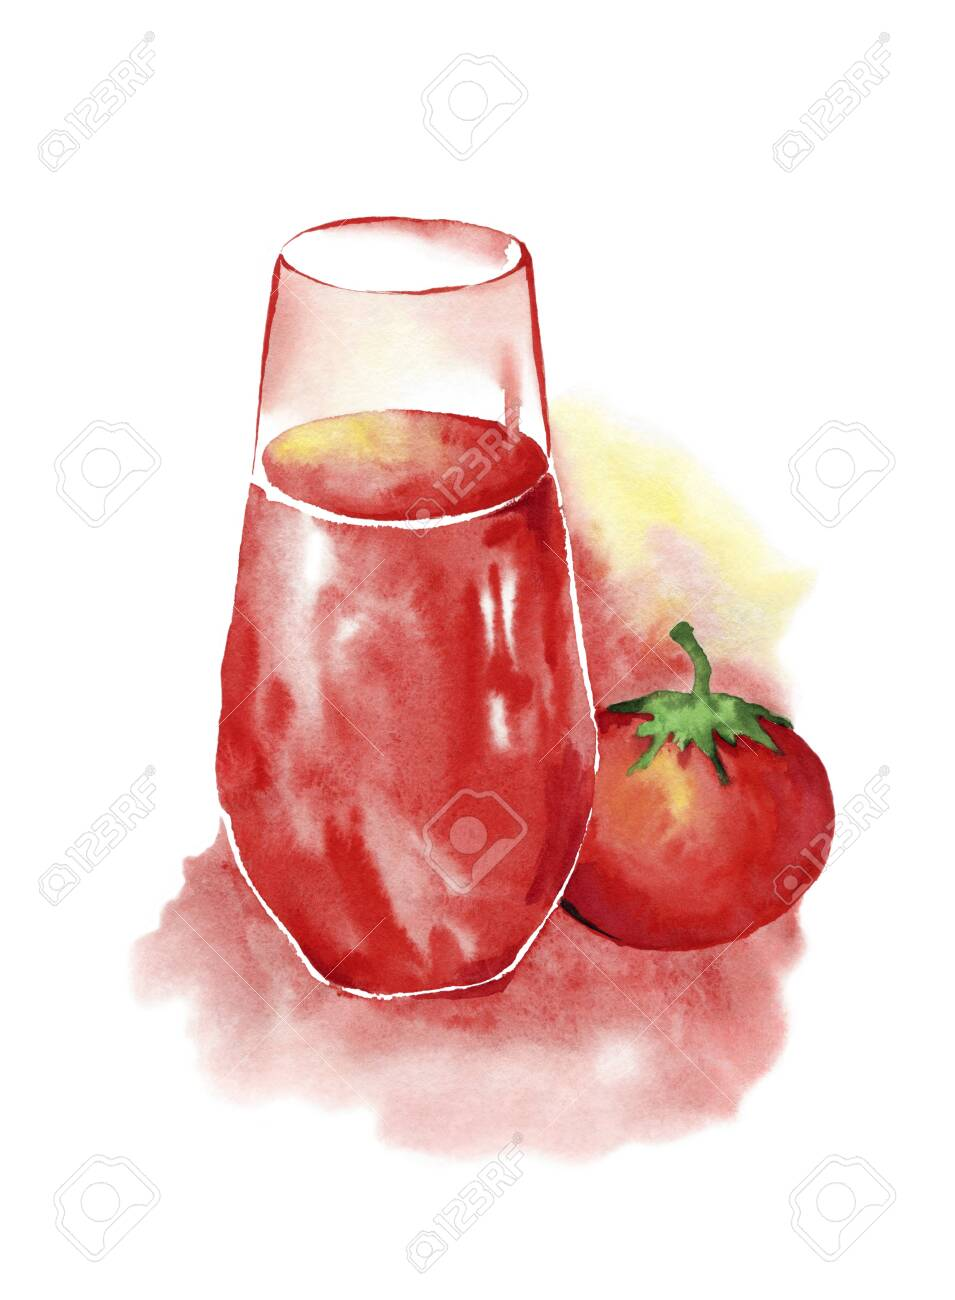 A glass of tomato juice and a red ripe tomato.Watercolor drawing on a white background - 148612013